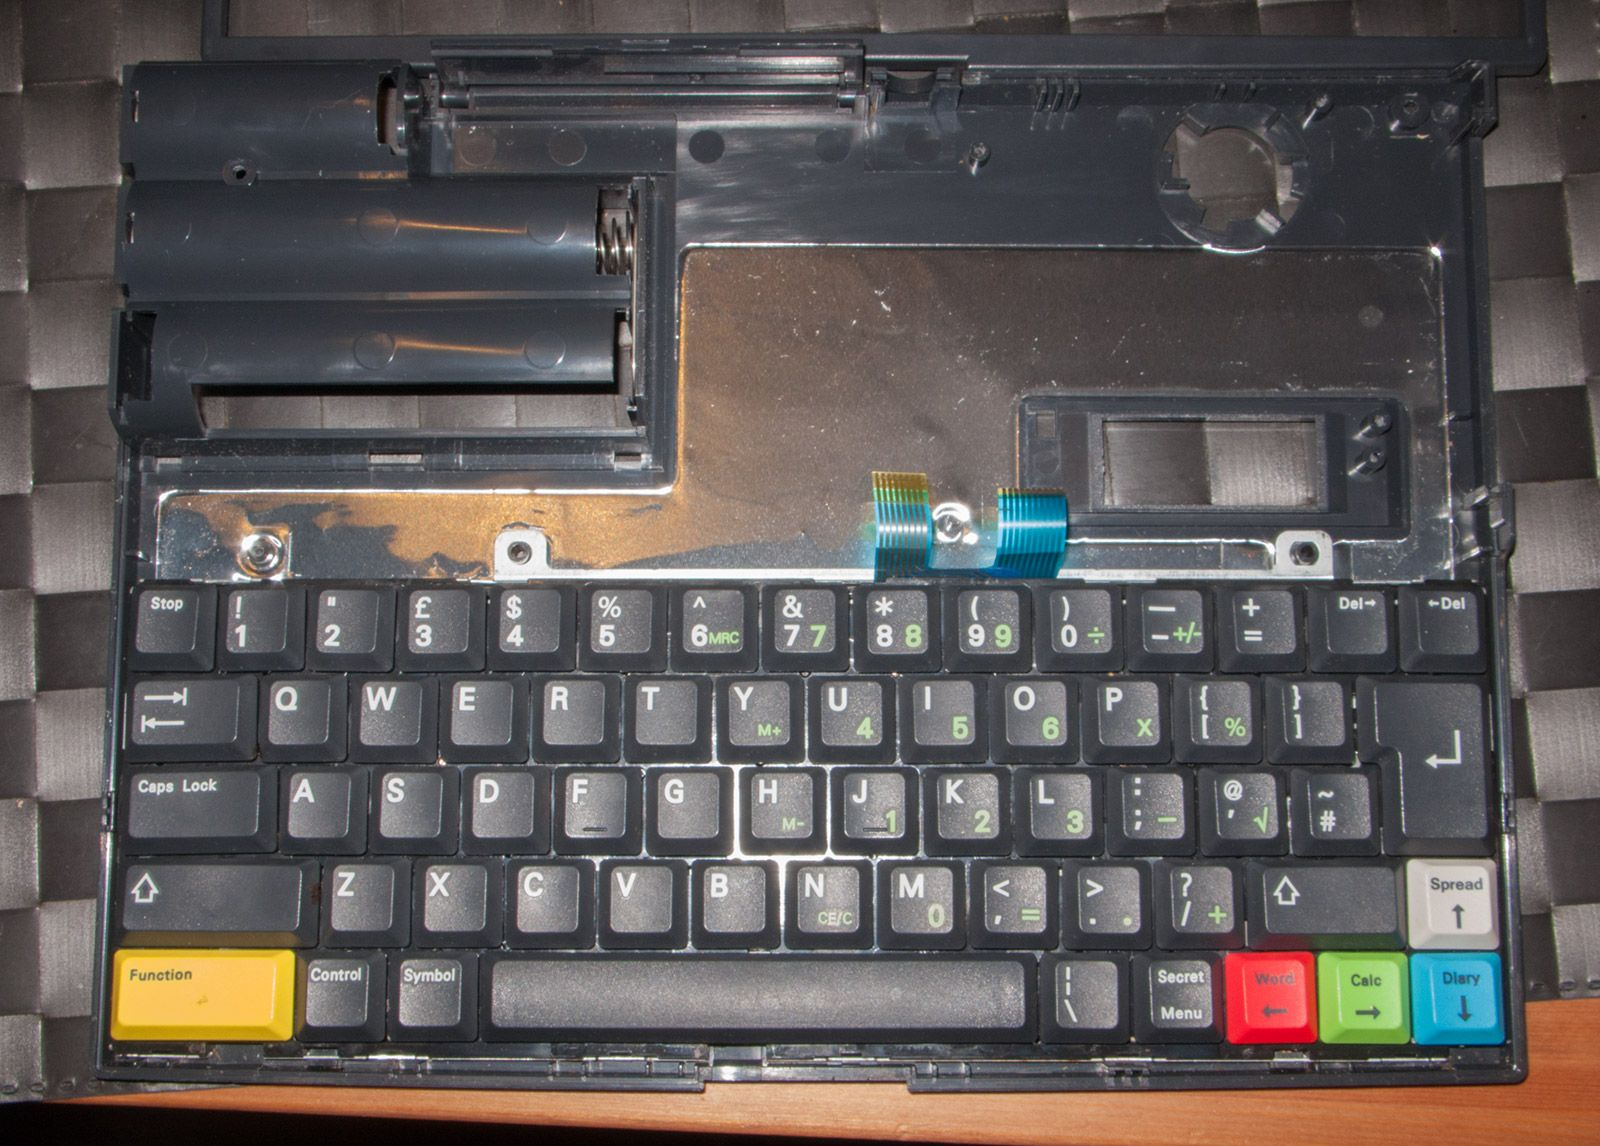 keyboard of an Amstrad Notepad NC200 without the floppy drive